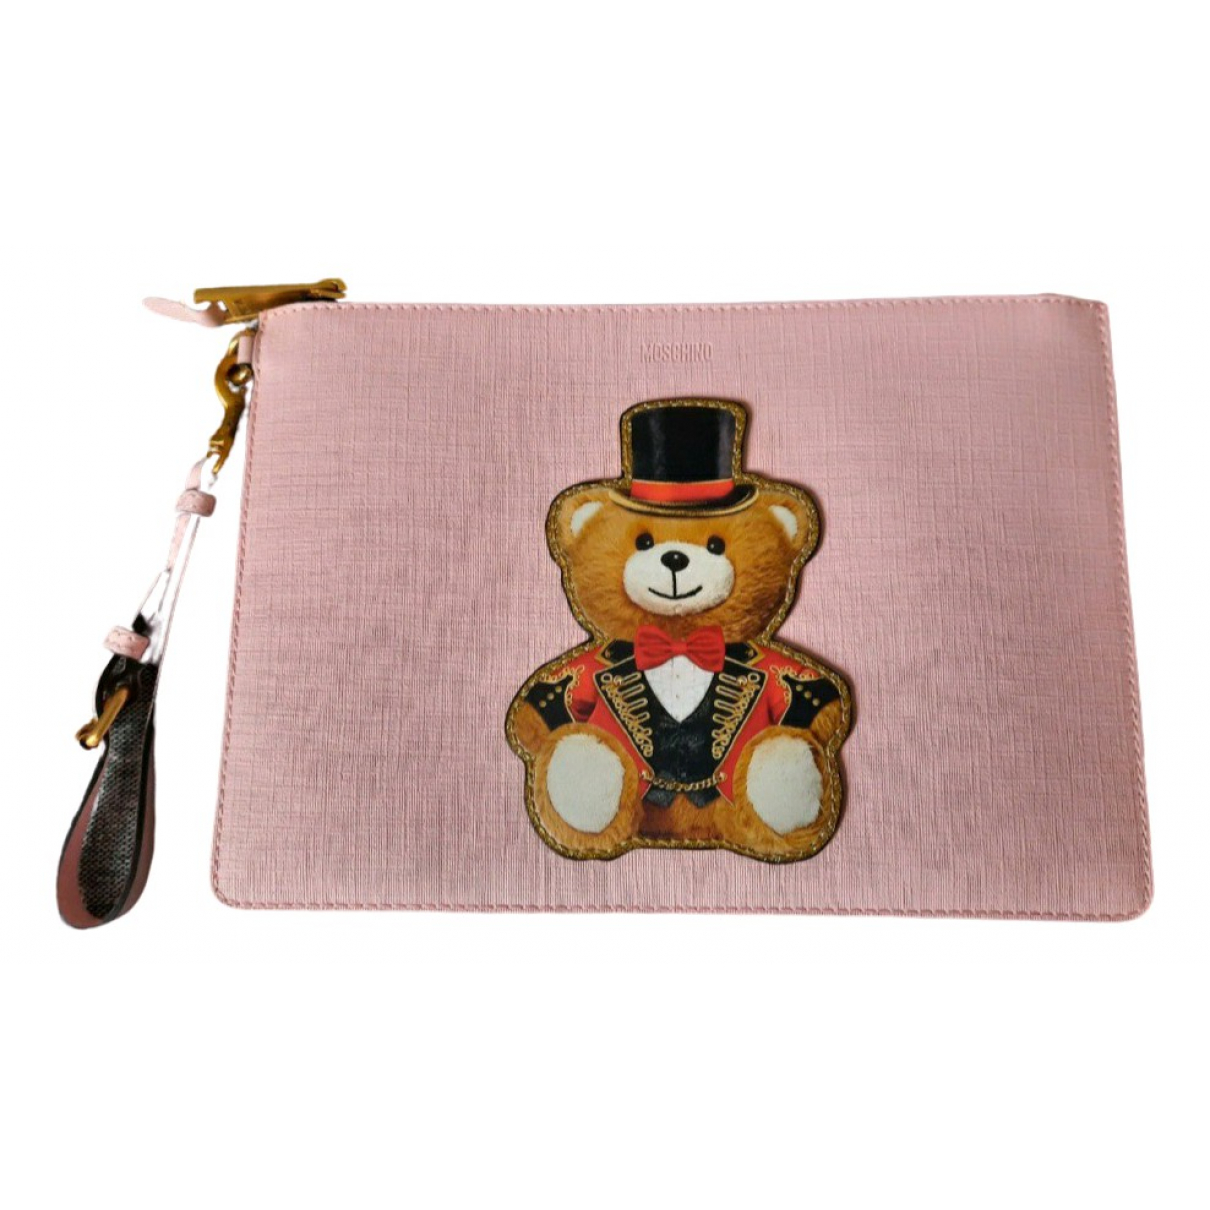 Moschino \N Pink Clutch bag for Women \N